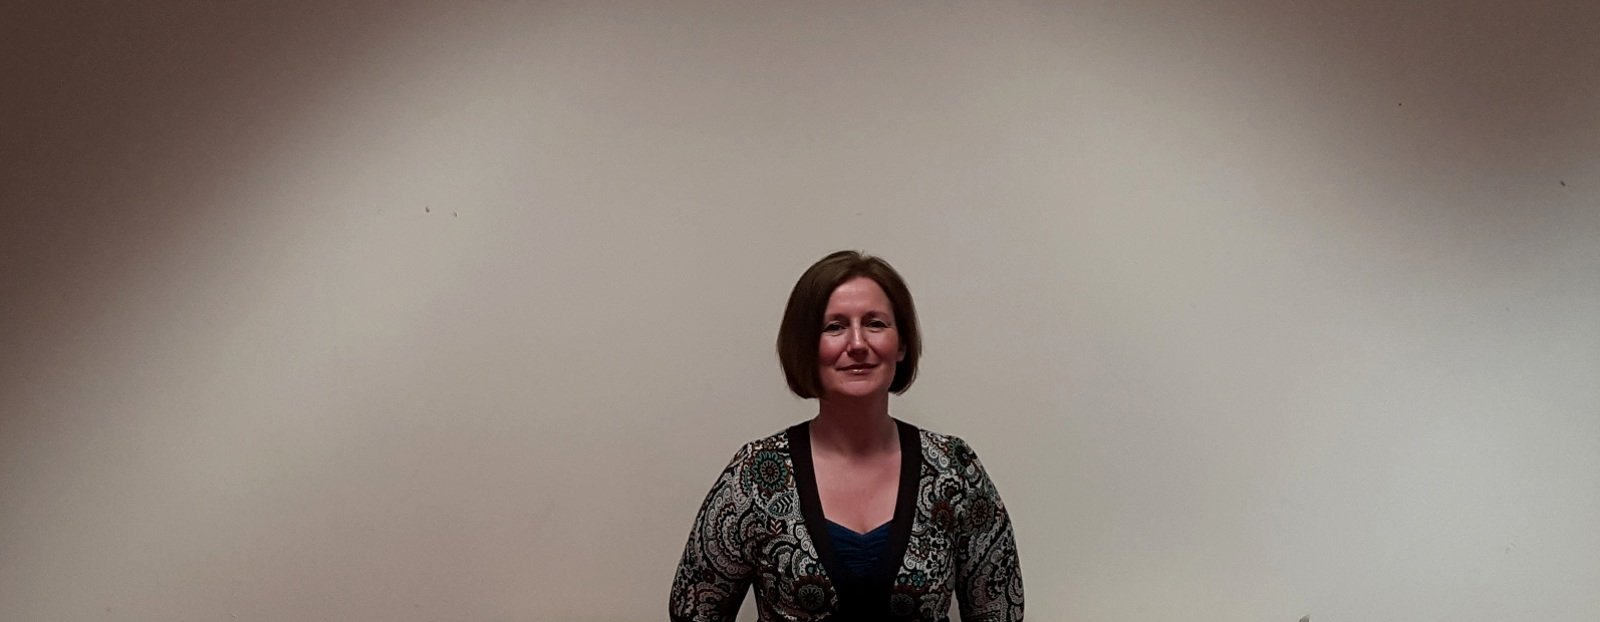 Joanne Savill - Service Manager for Social and Learning (Outreach Support)